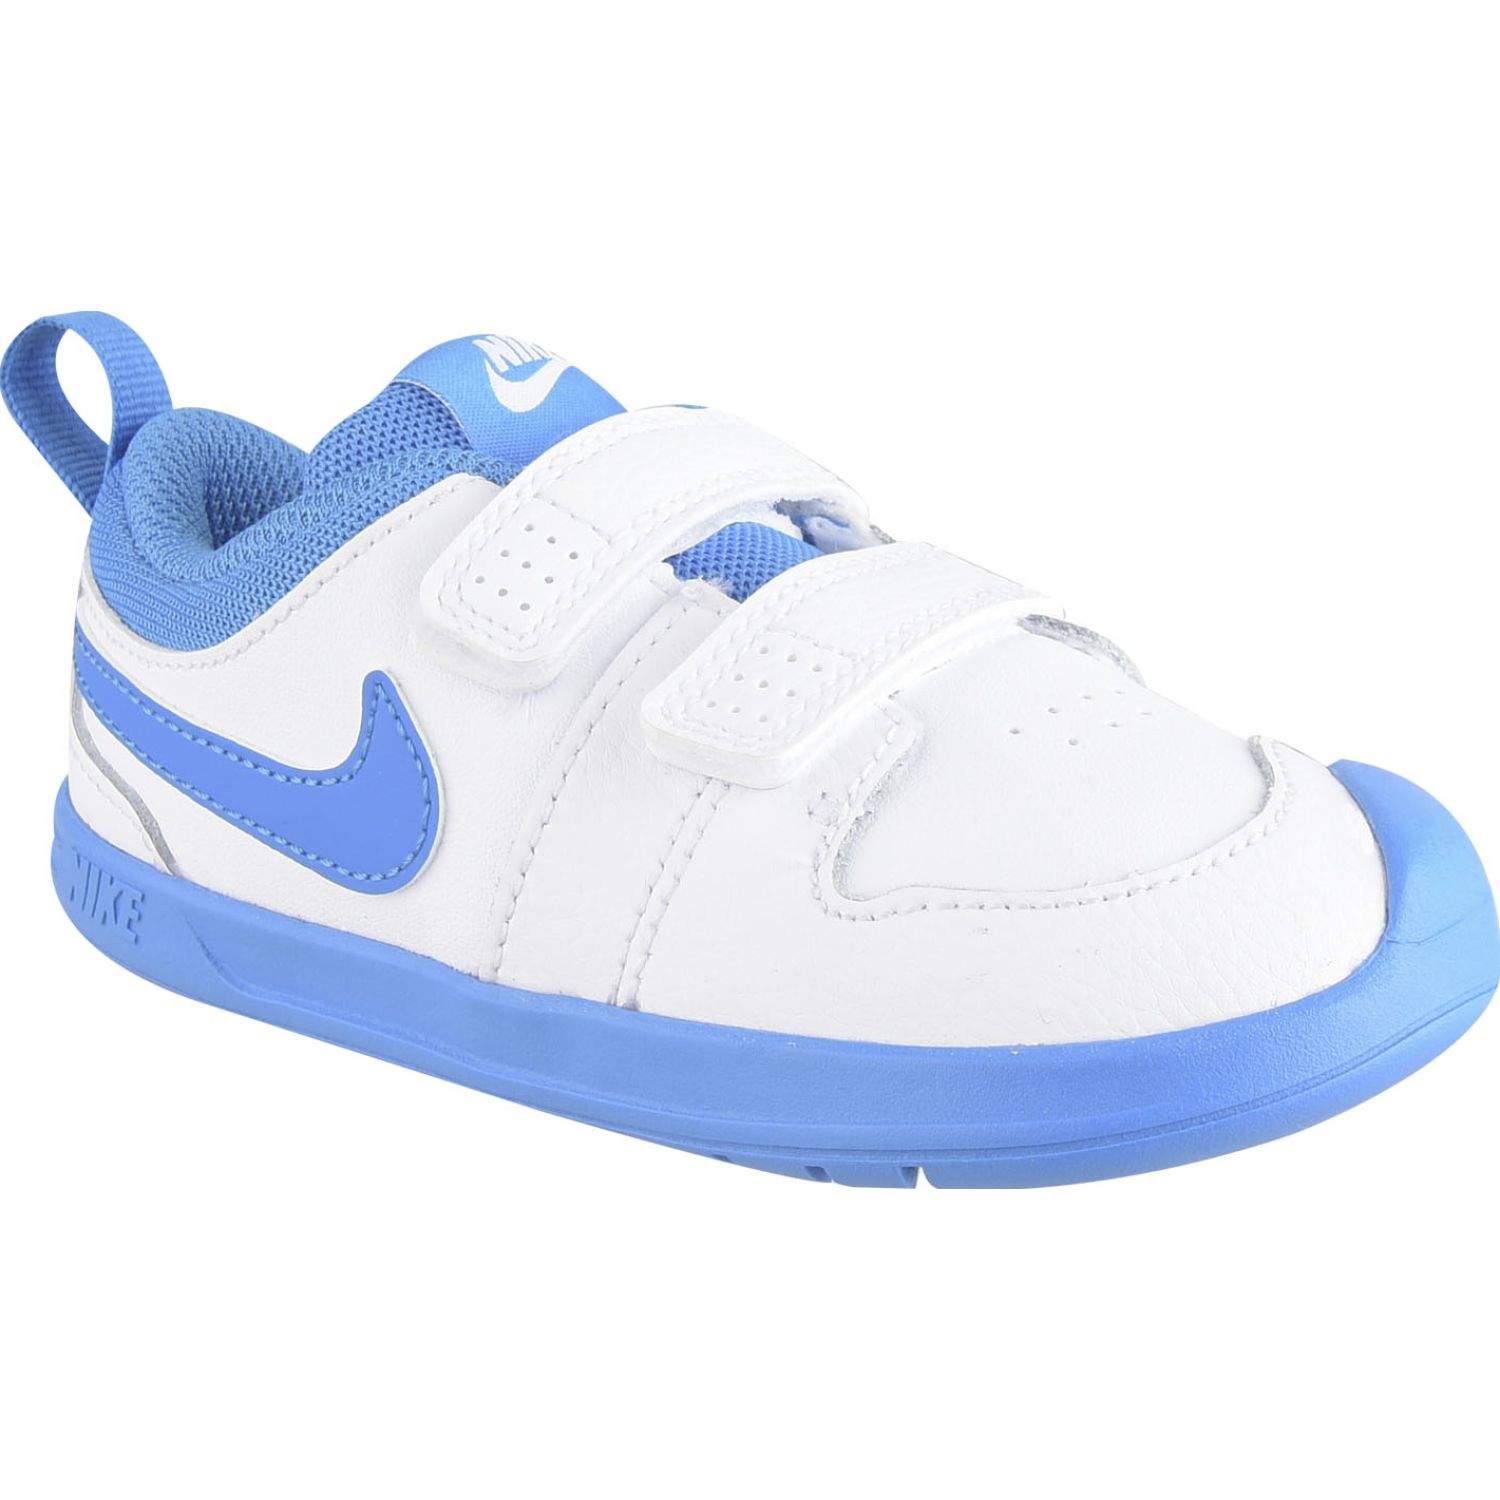 Nike NIKE PICO 5 TDV Blanco Fitness y Cross-Training